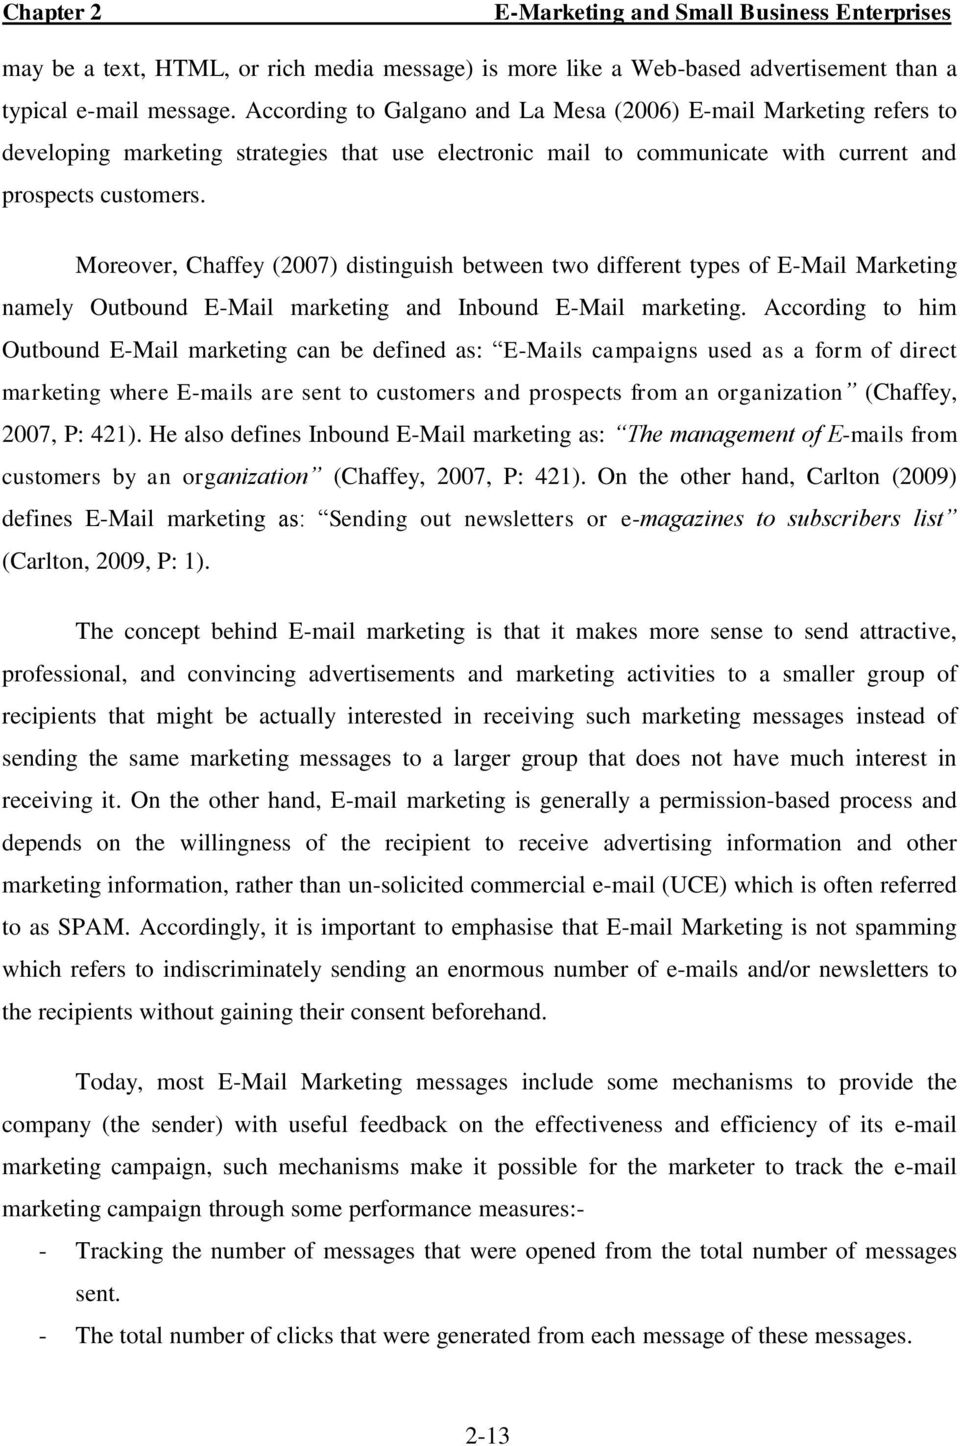 Moreover, Chaffey (2007) distinguish between two different types of E-Mail Marketing namely Outbound E-Mail marketing and Inbound E-Mail marketing.